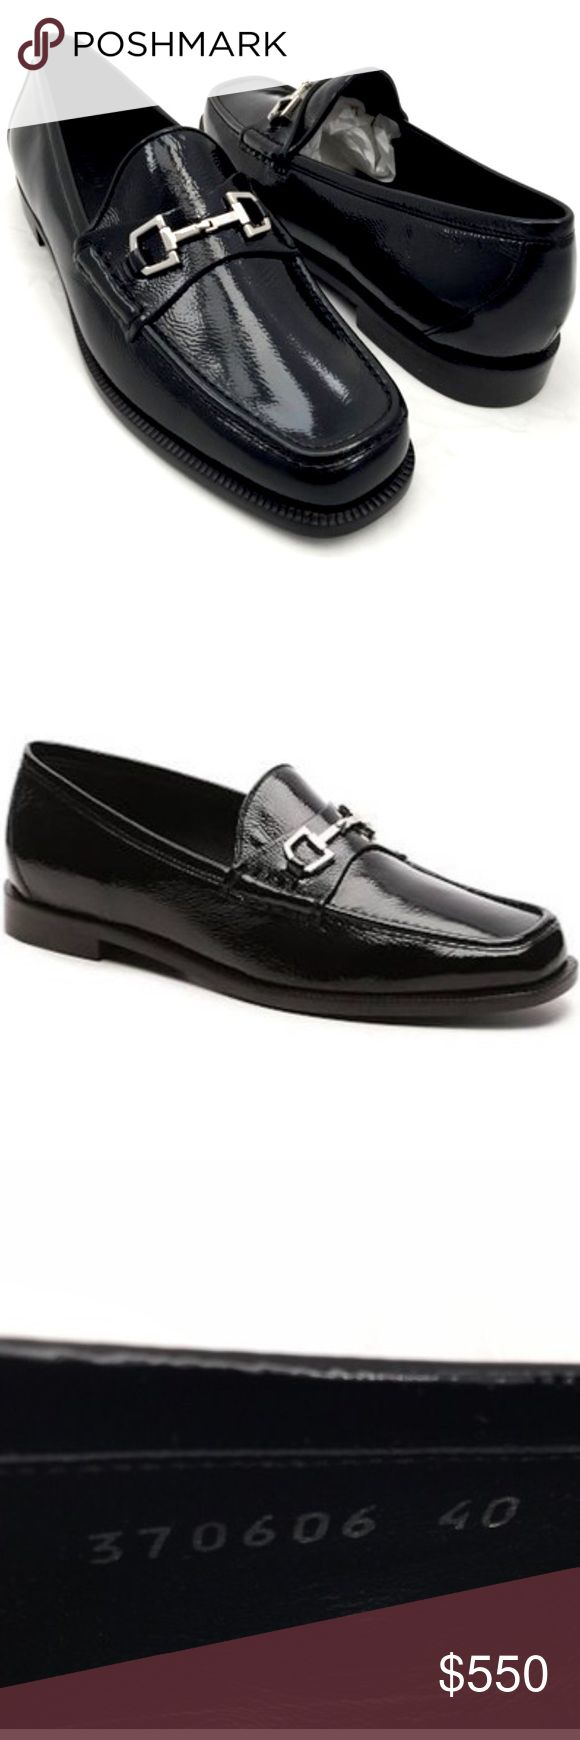 Gucci Horse Bit Loafer Gucci Horse Bit Loafer  Composition Leather Size 40 Retail $595  100% Gucci   To place your mind at ease the shoes will go thru Poshmark concierge service to authenticate Gucci loafers  Source Gucci boutique   If interested I do encourage that you place a offer; as I will not drop this price. Gucci Shoes Flats & Loafers